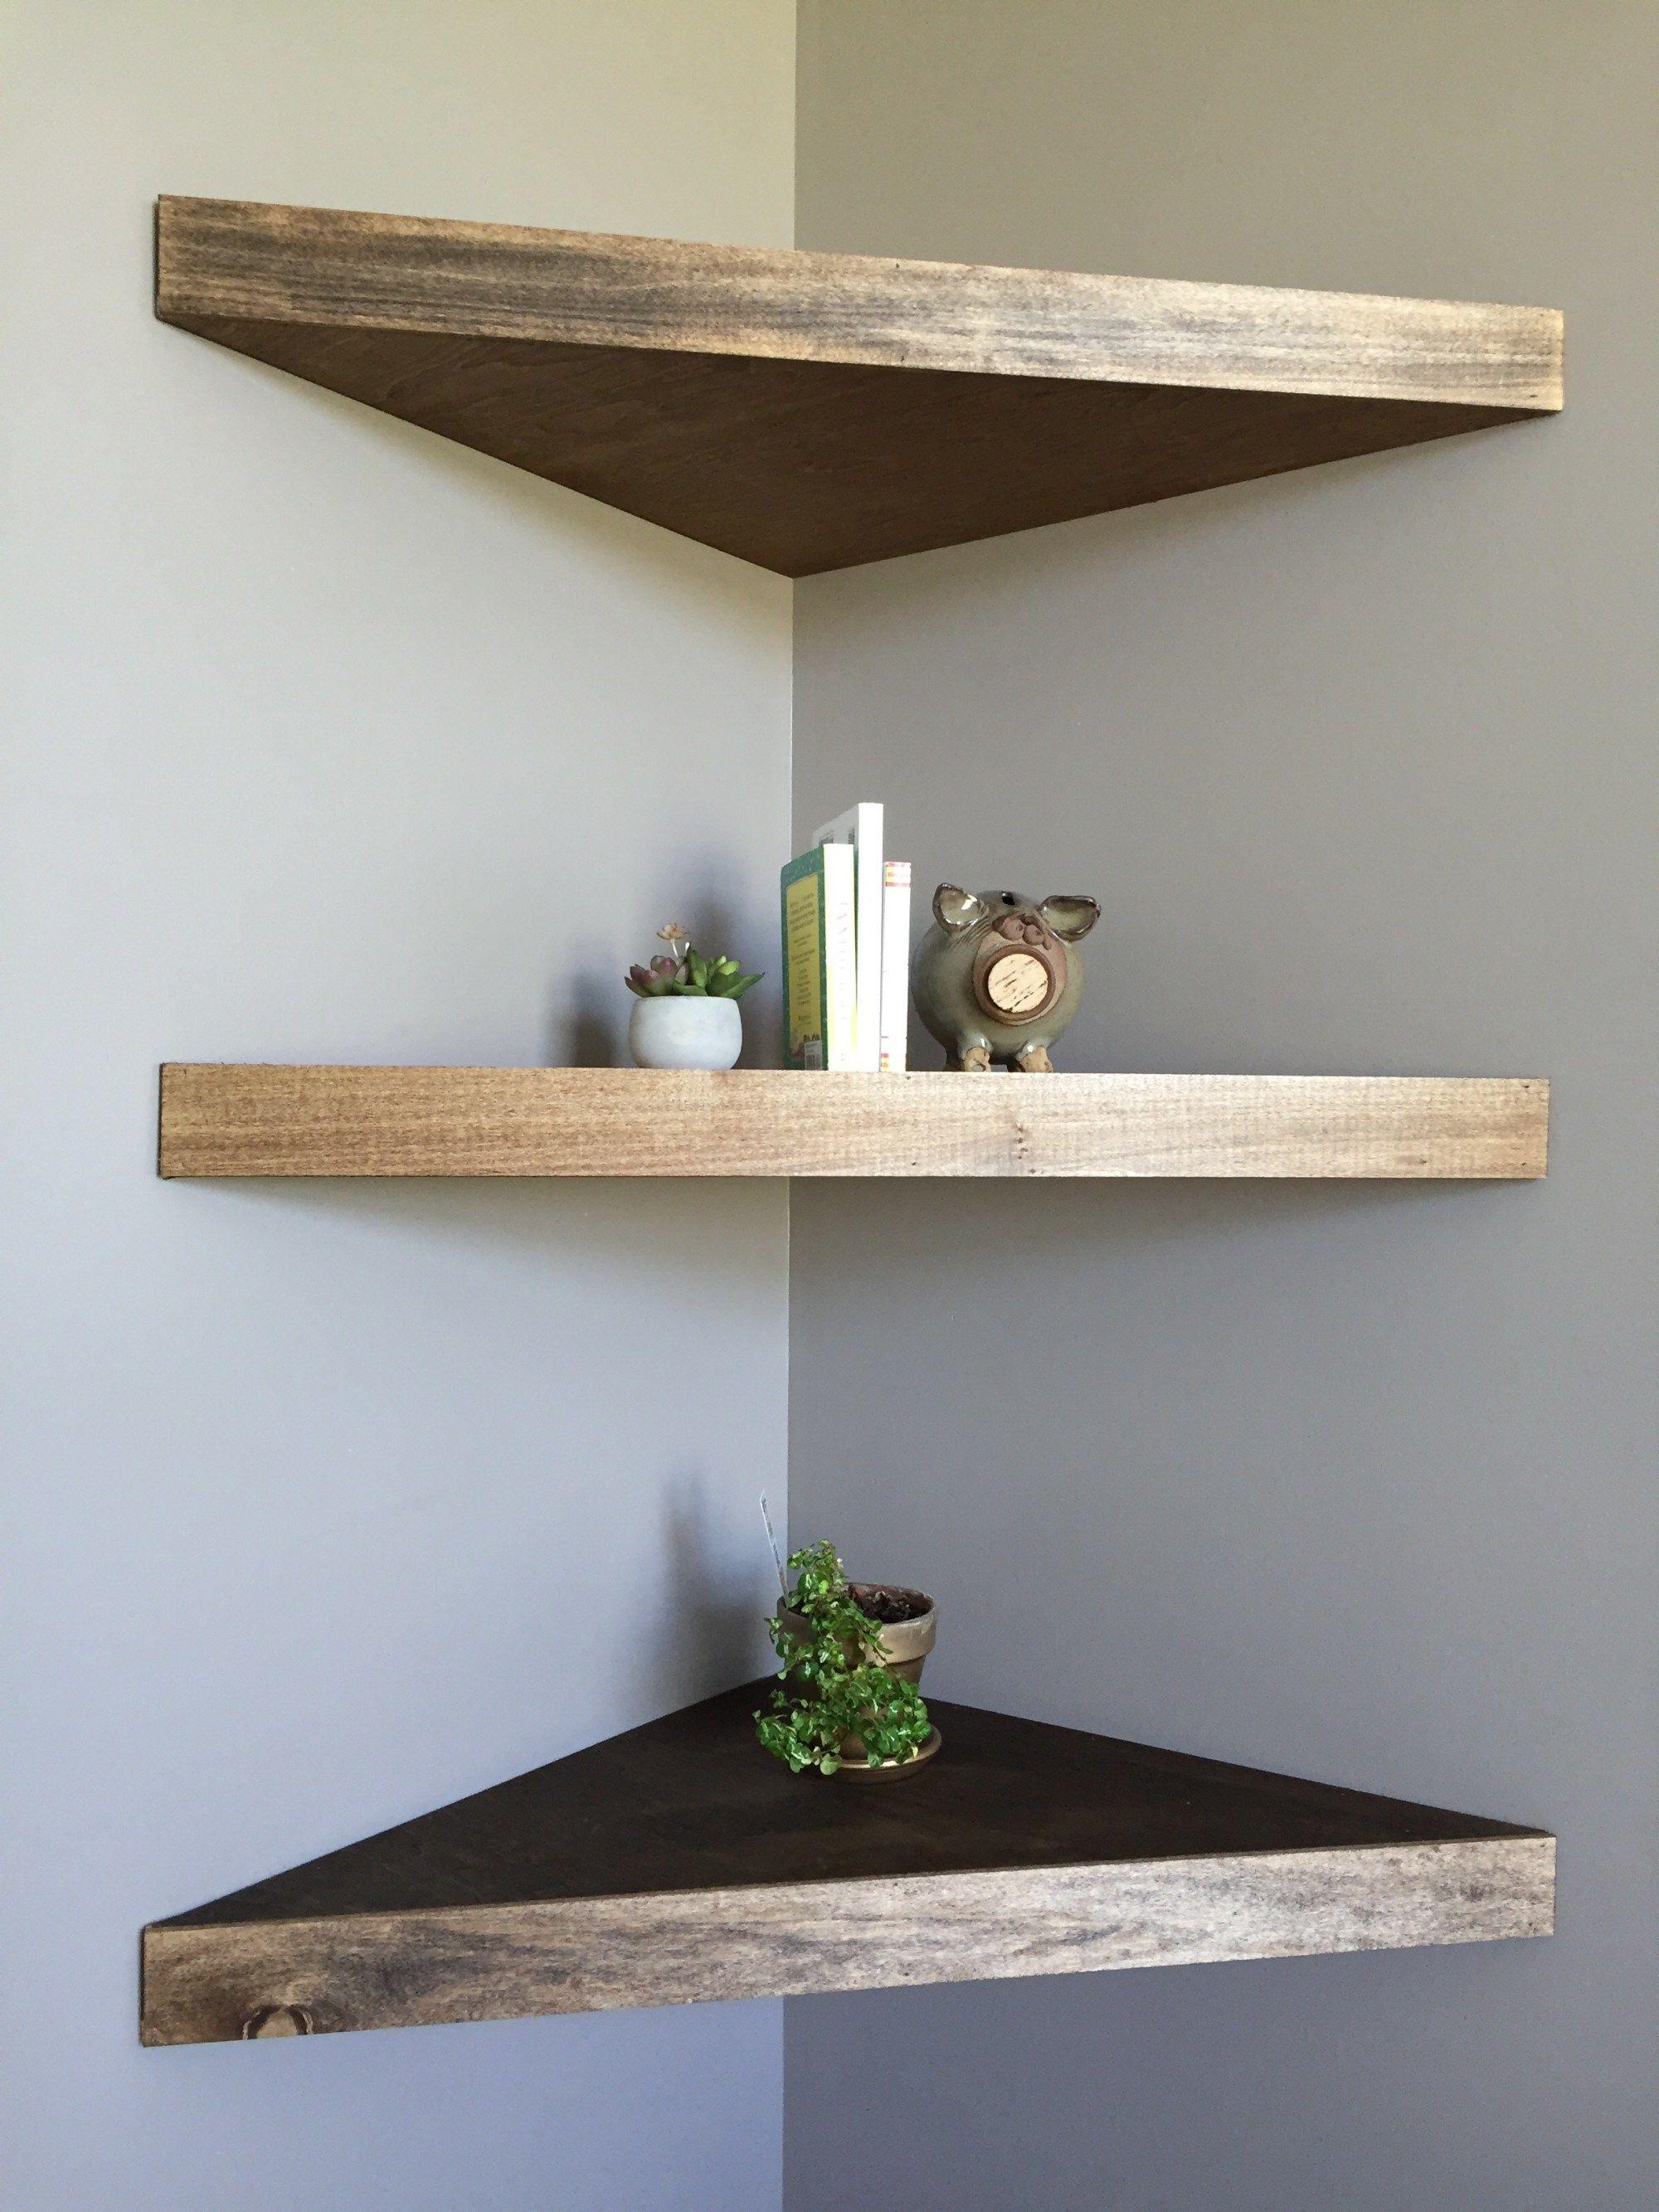 diy floating corner shelves for the home inch shelf ikea angled wall office workstation boat shaped unit chrome coat rack mounted barnwood fireplace bookshelf ideas hand cart